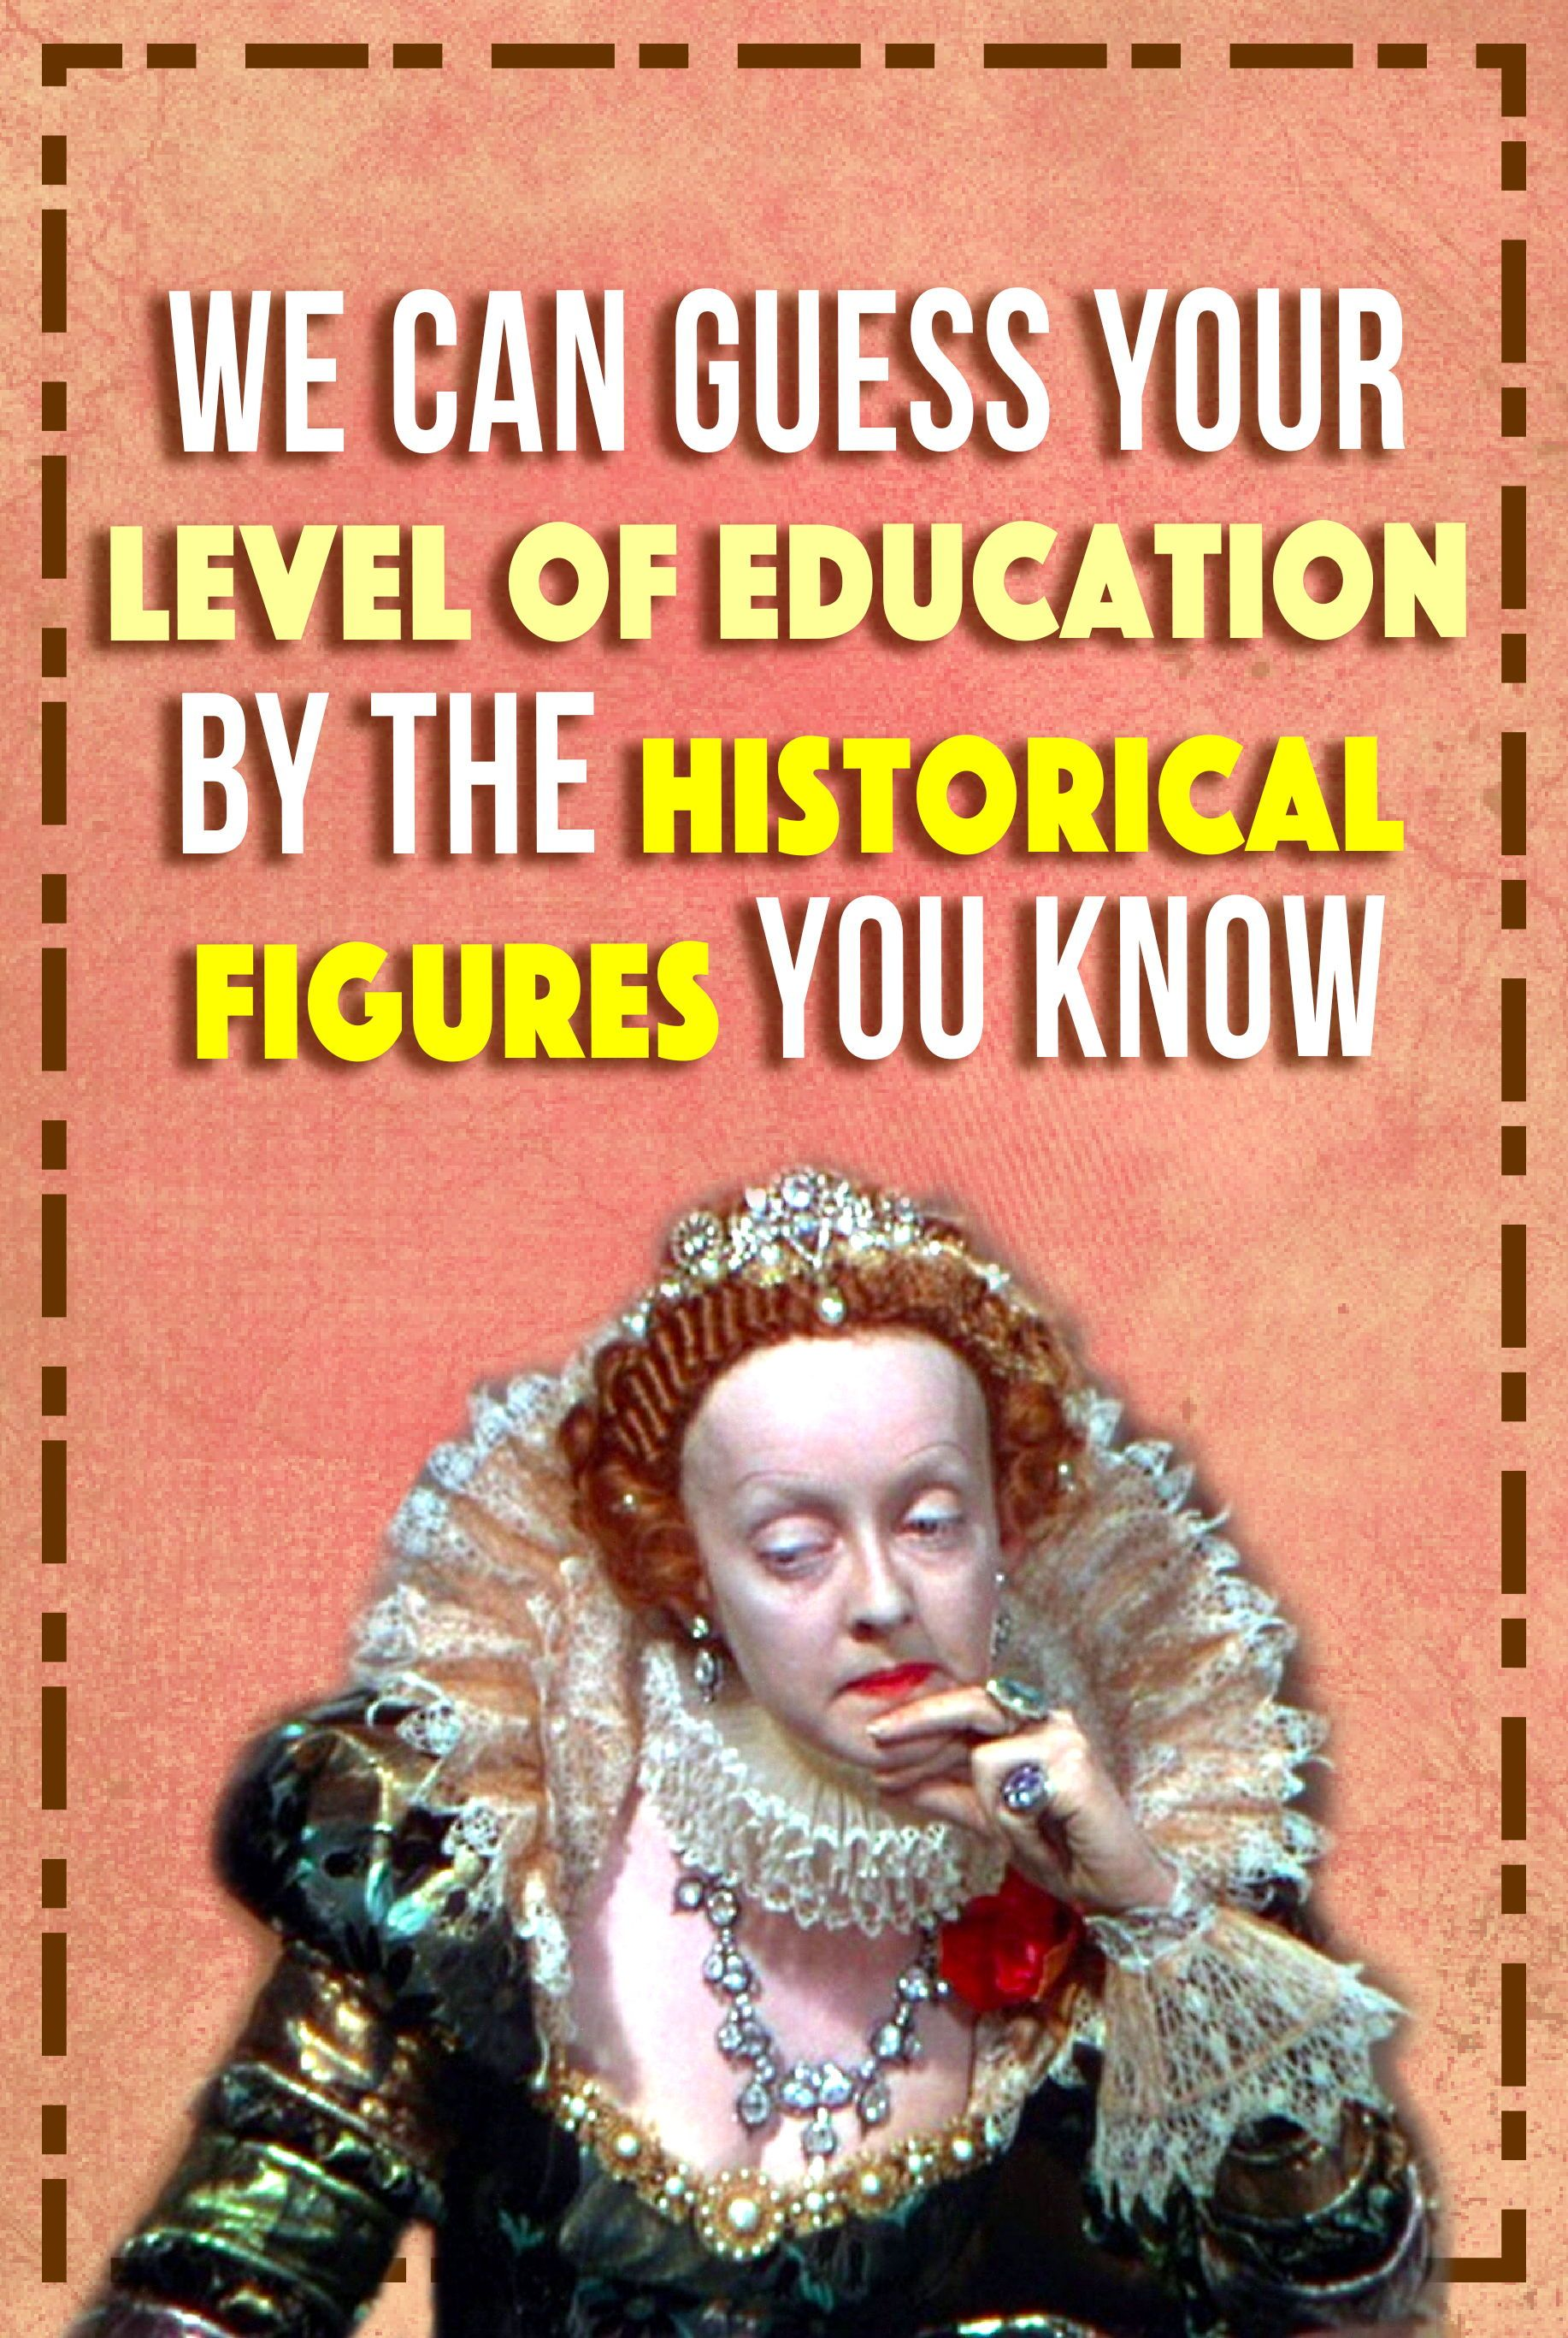 We Can Guess Your Level Of Education By The Historical